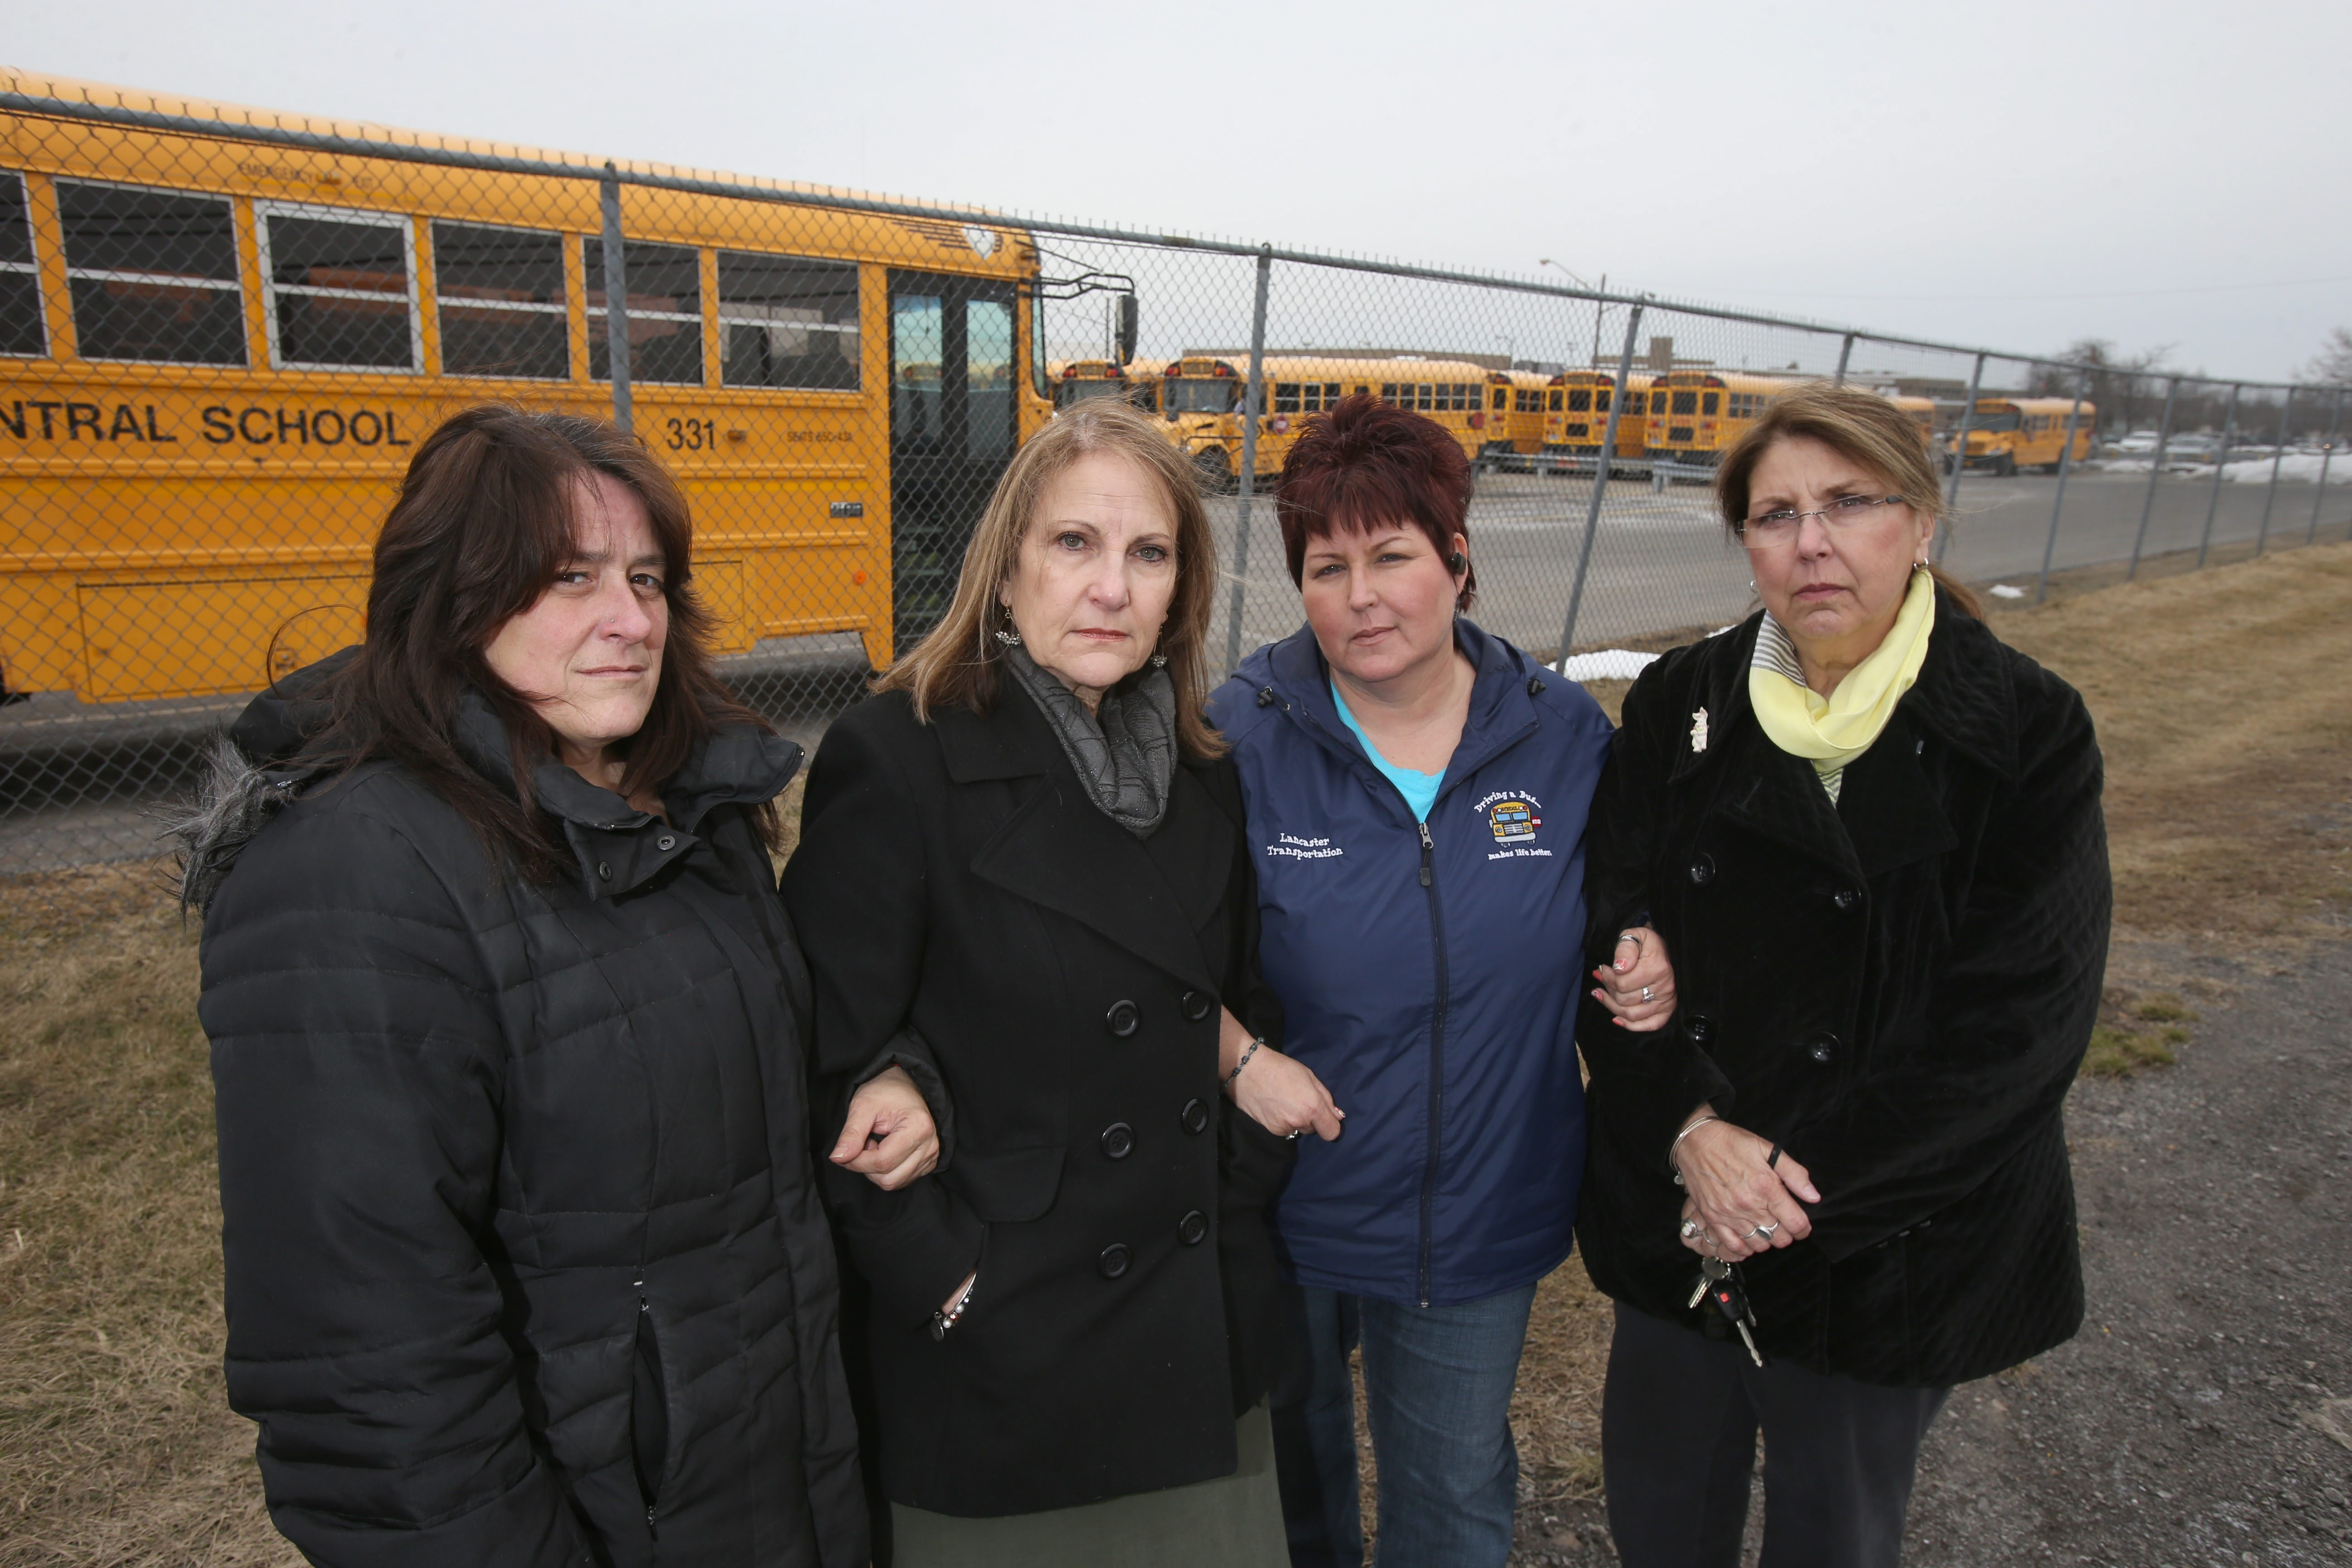 Lancaster Central School District workers Gina Scaglione, left, Mary Refermat, Mary Juliano and Deborah Bak have filed complaints against Robert W. Mowry.